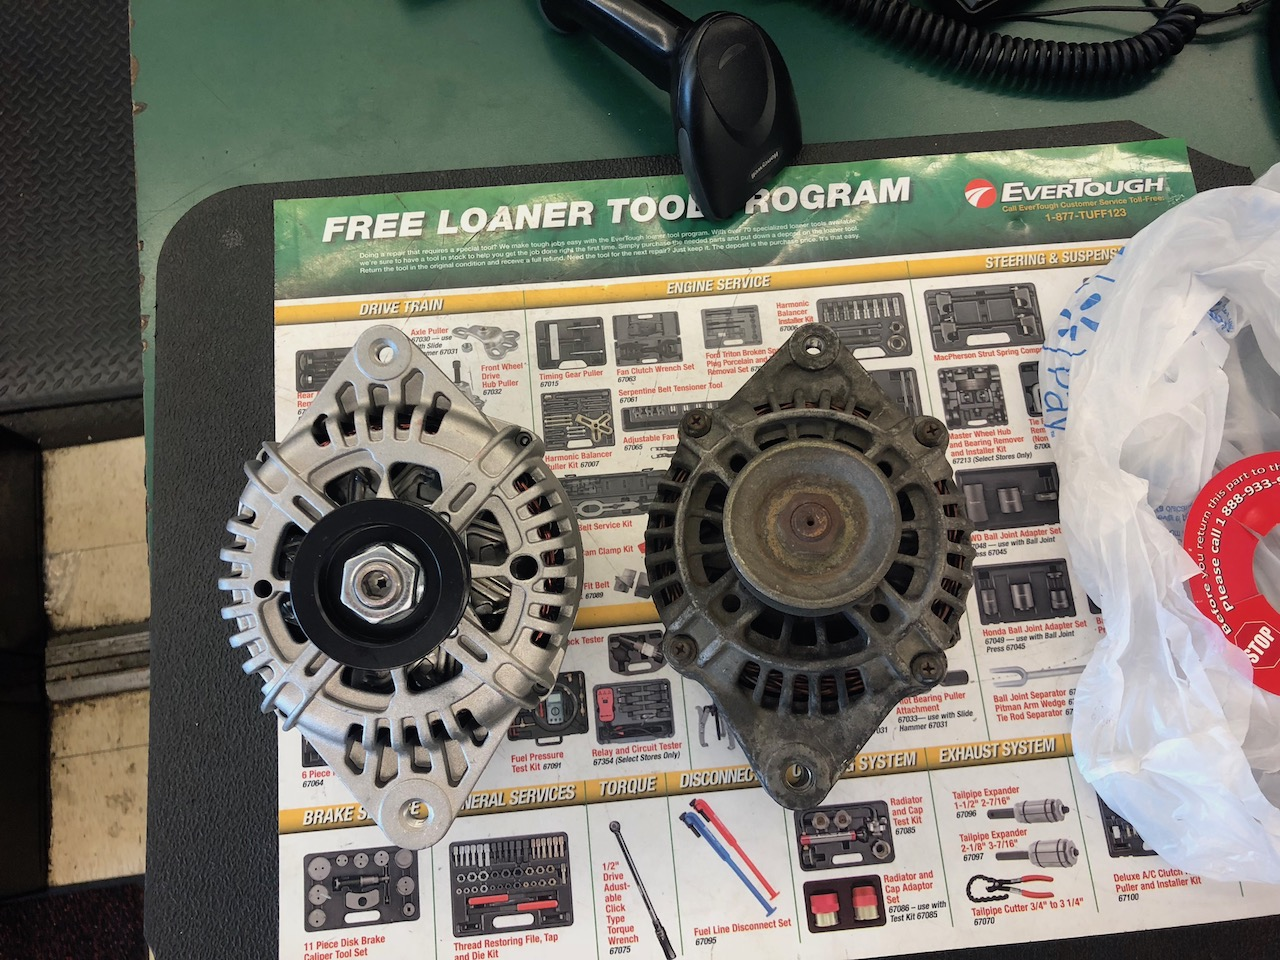 High Output Alternator Swap From Sephia To Sportage Kia Forum Amp Wiring Diagram Click Image For Larger Version Name 110front And 70front Views 80 Size